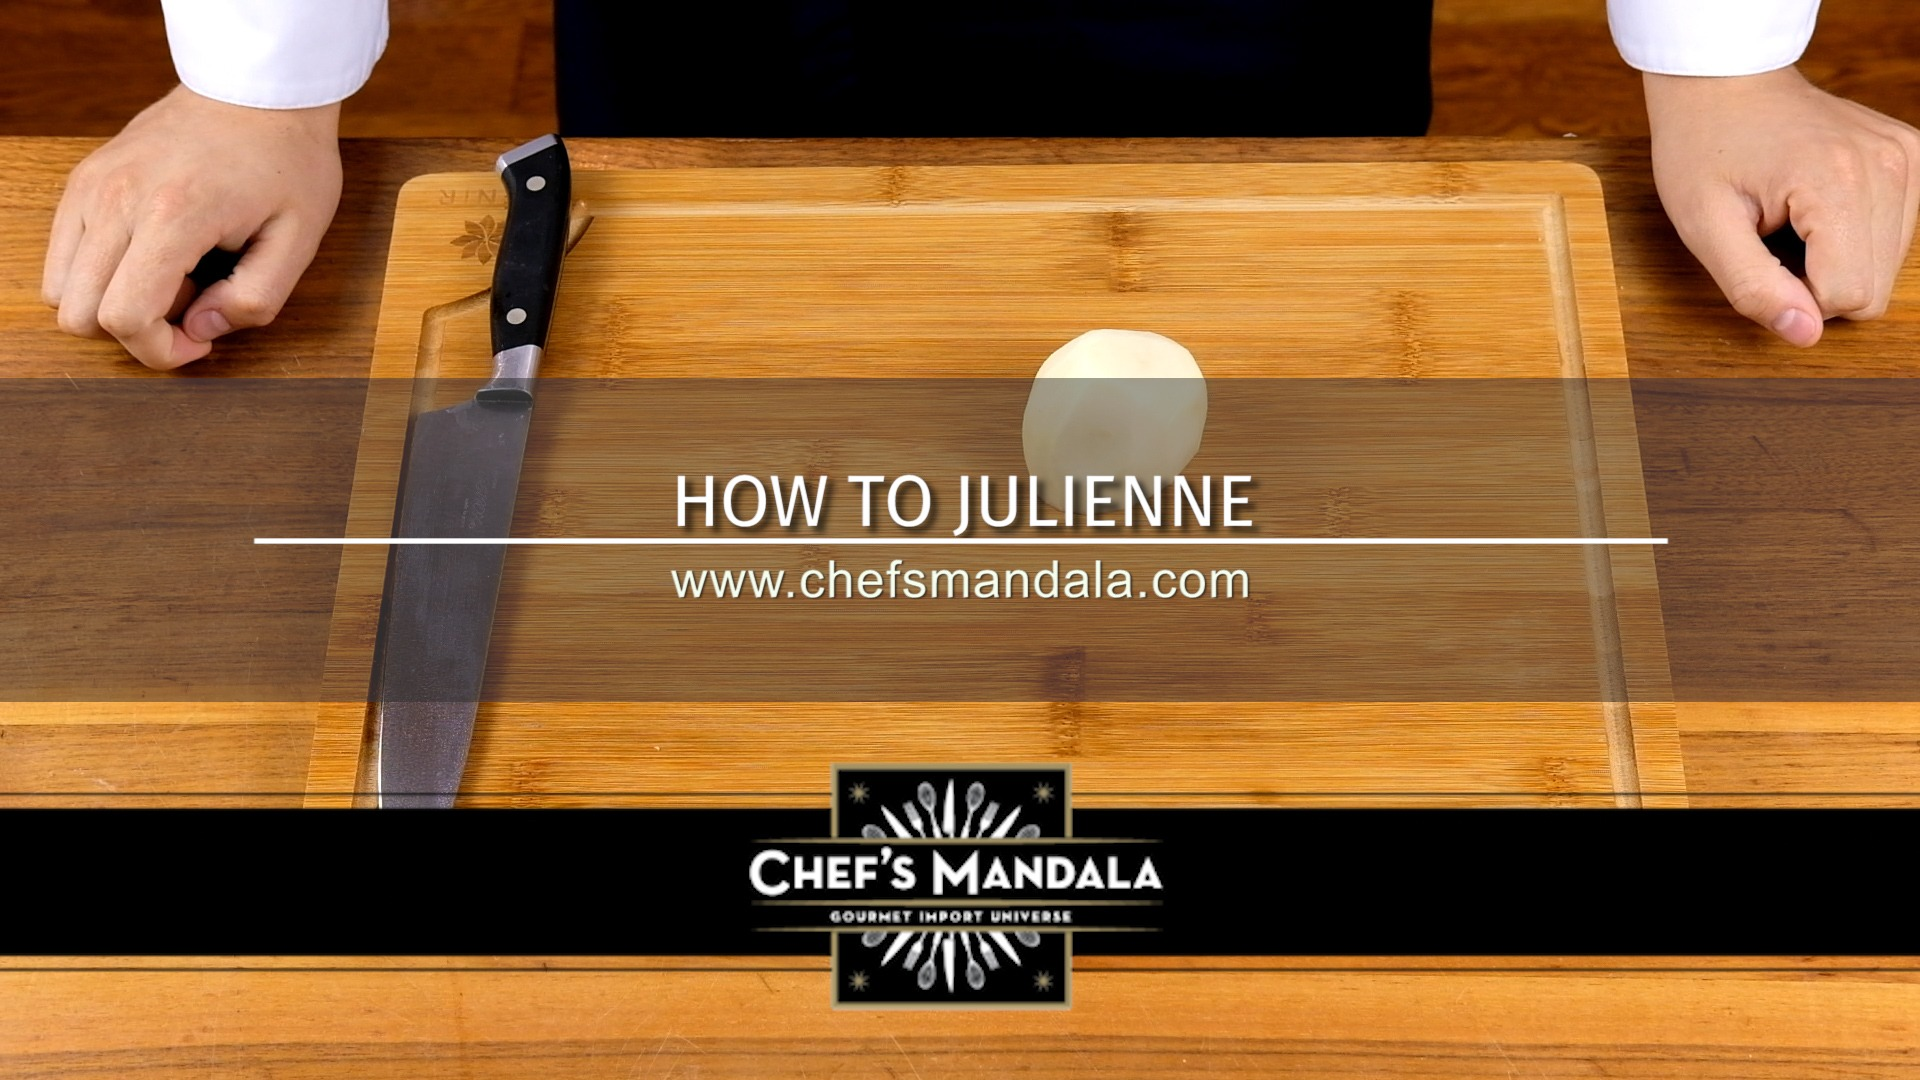 HOW TO JULIENNE A POTATO